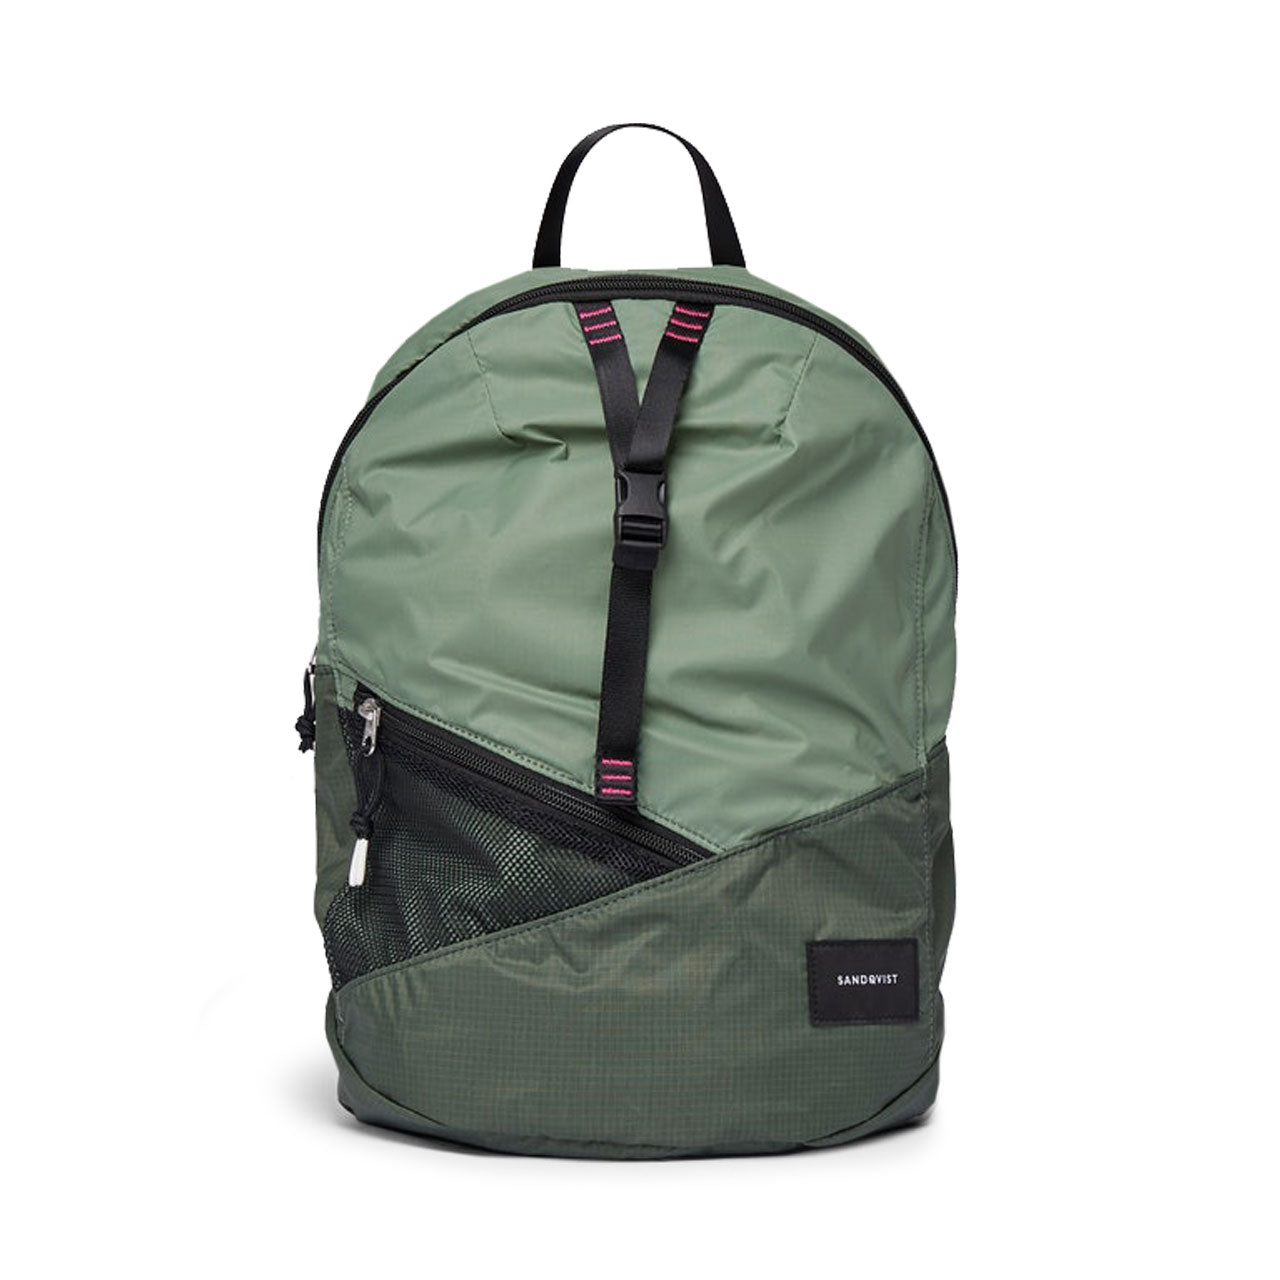 Sandqvist Erland Lightweight Backpack